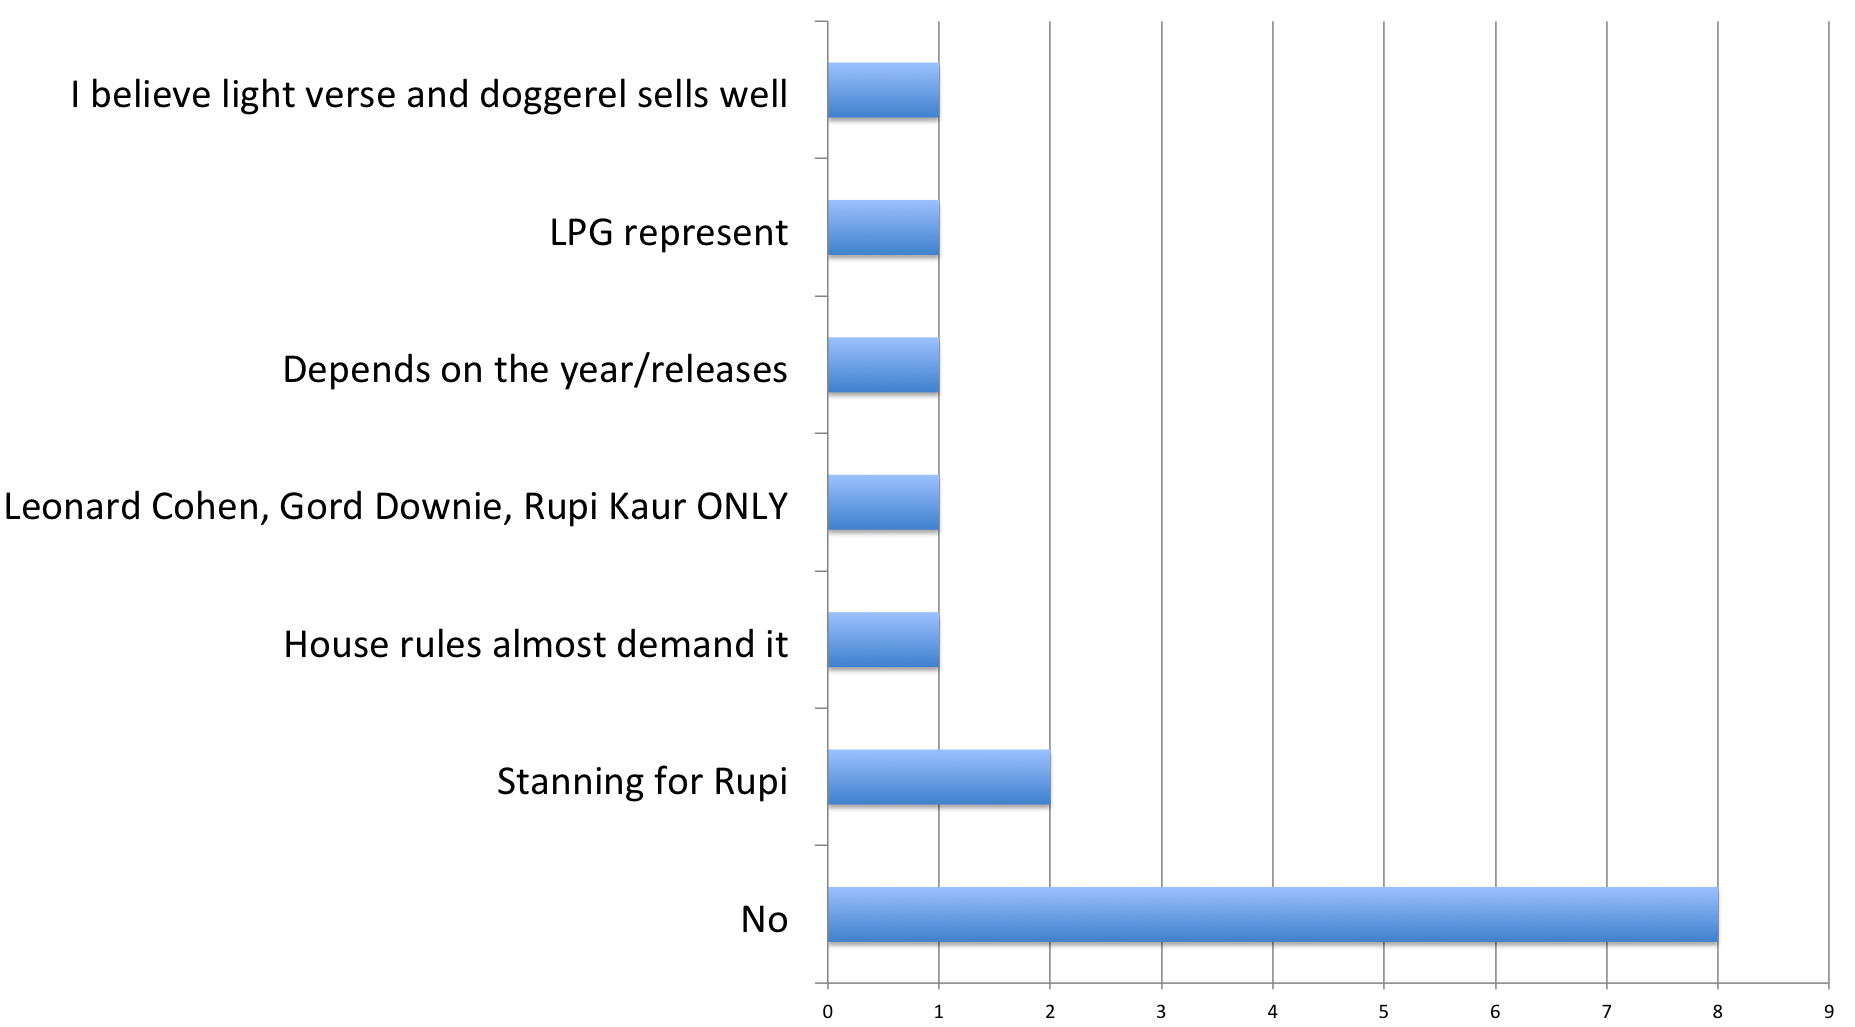 Bar chart illustrating whether respondents would buy poetry titles. I believe light verse and doggerel sells well=1, LPG represent=1, Depends on the year/releases=1, Leonard Cohen, Gord Downie, Rupi Kaur ONLY=1, House rules almost demand it=1, Stanning for Rupi=2, No=8.